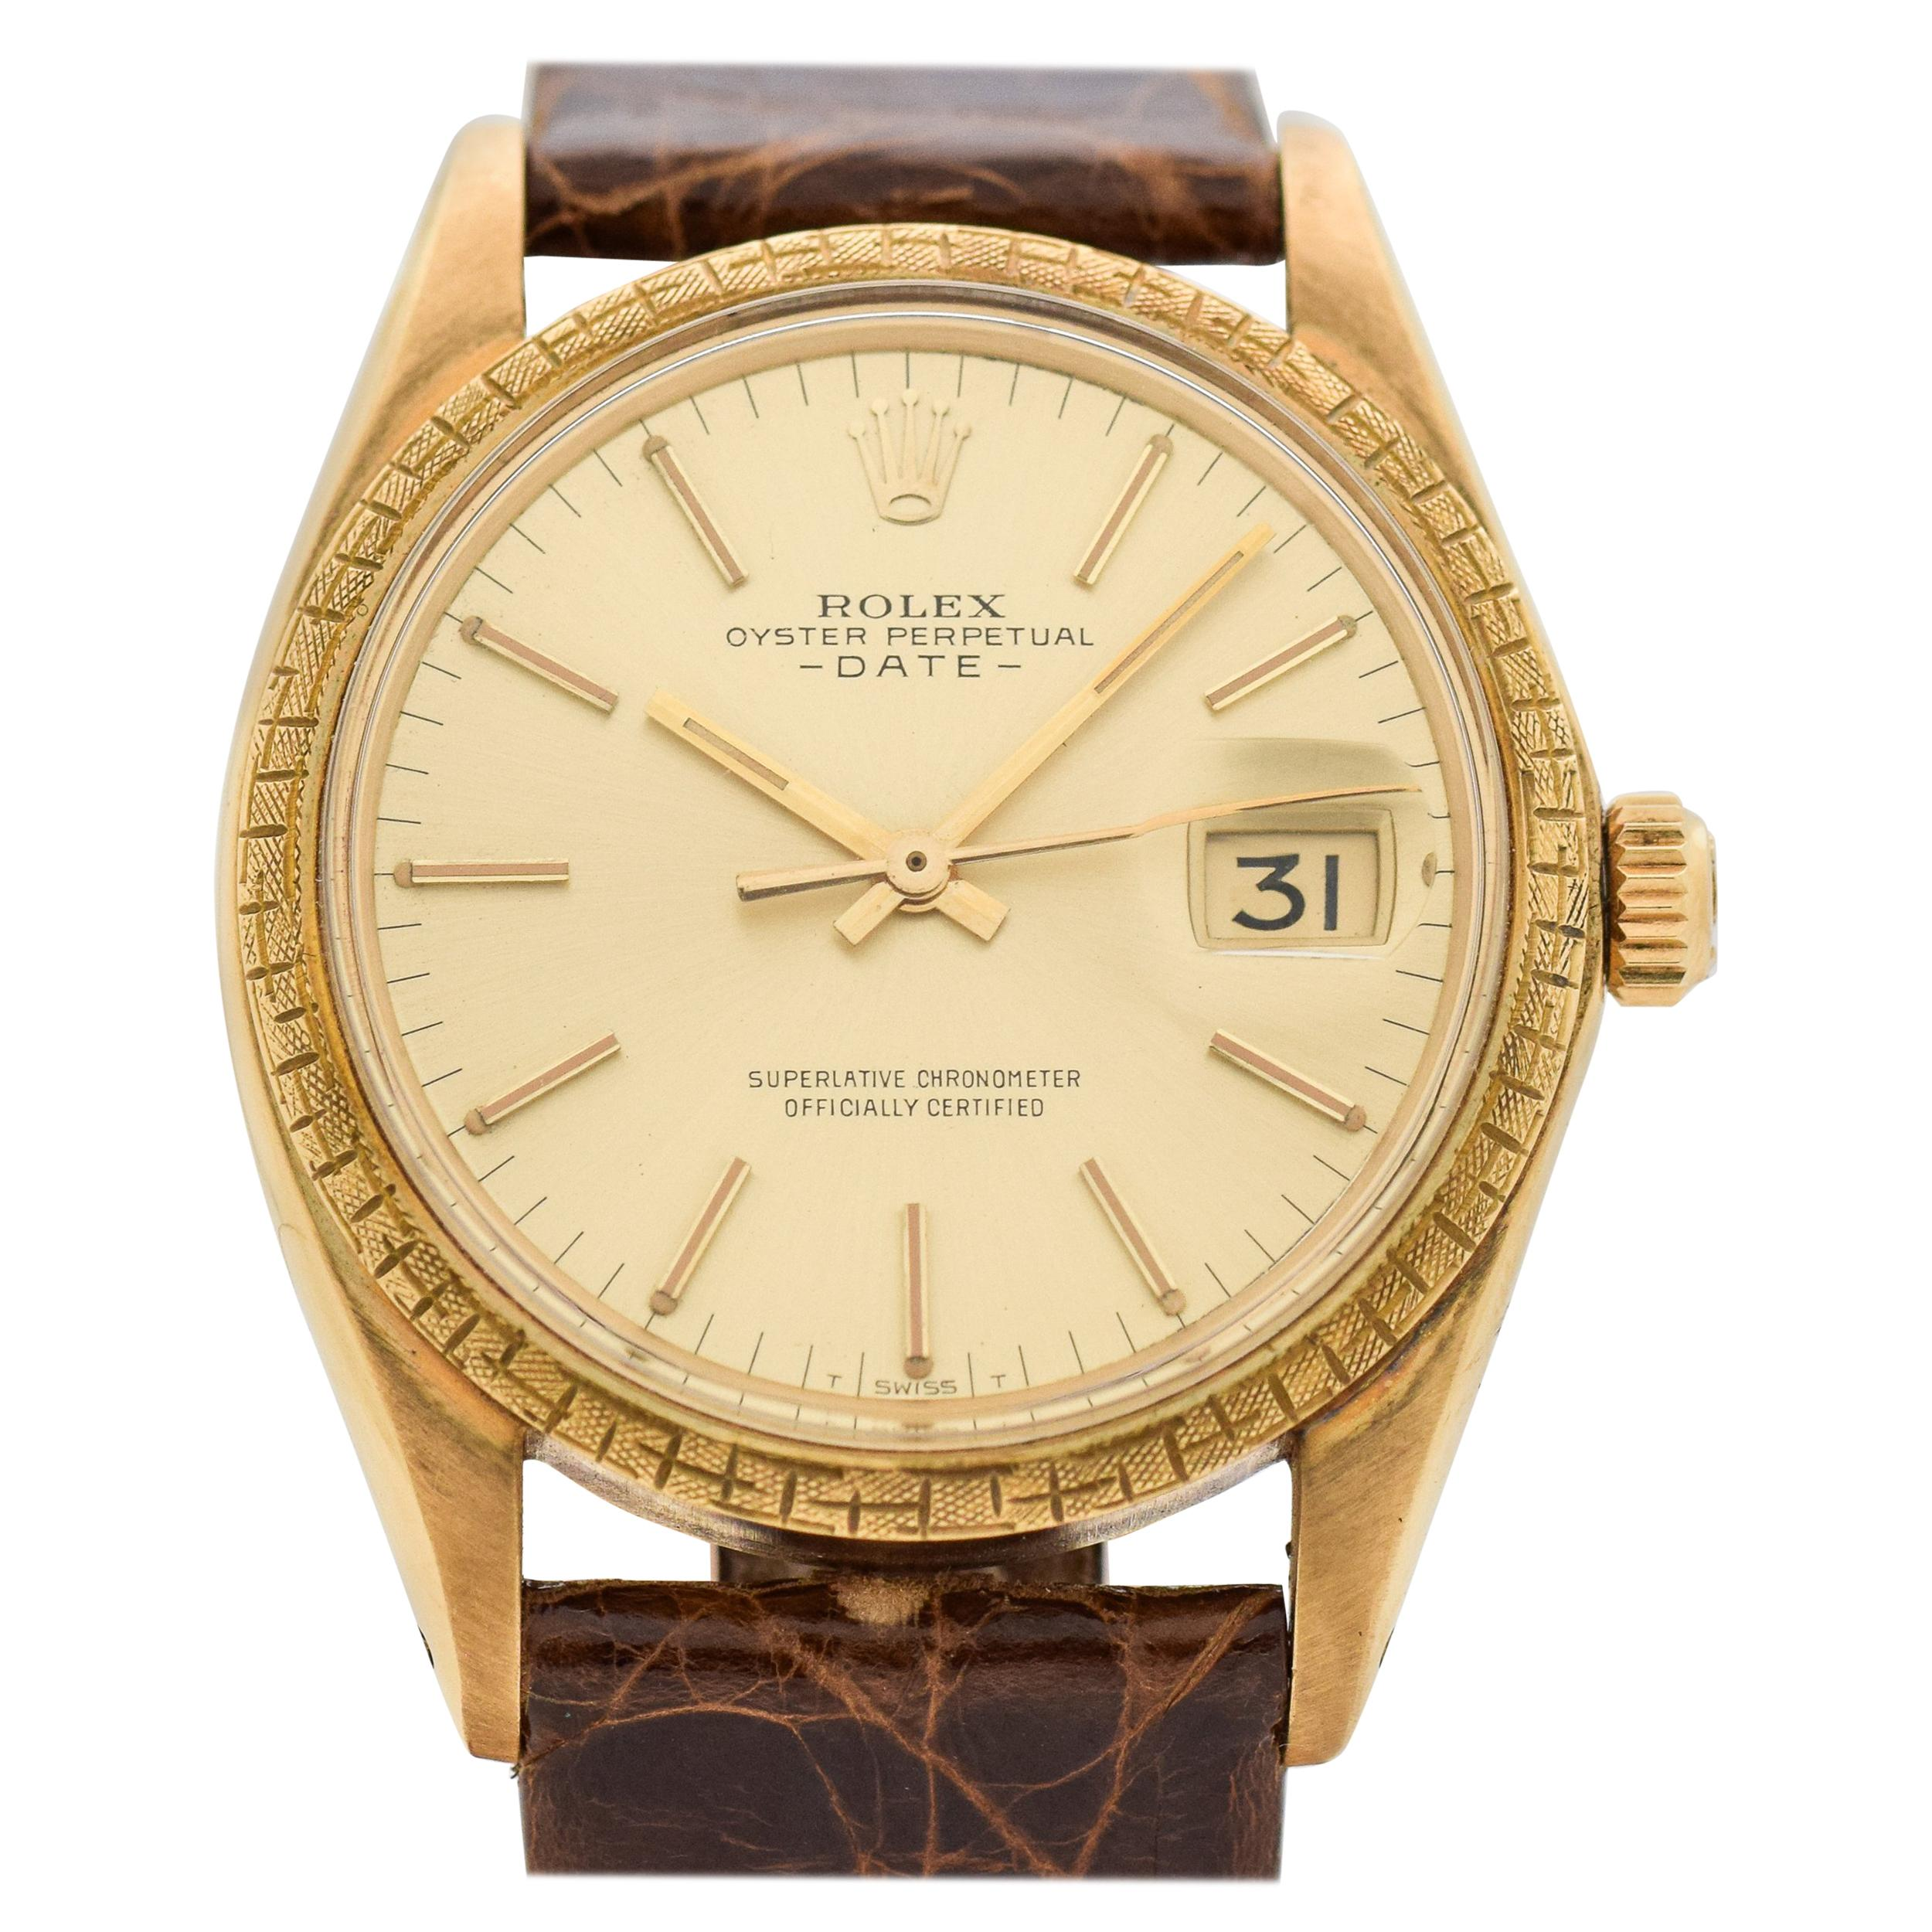 1314117109b Vintage Rolex Date Automatic Reference 1504 18 Karat Yellow Gold Watch,  1969 For Sale at 1stdibs